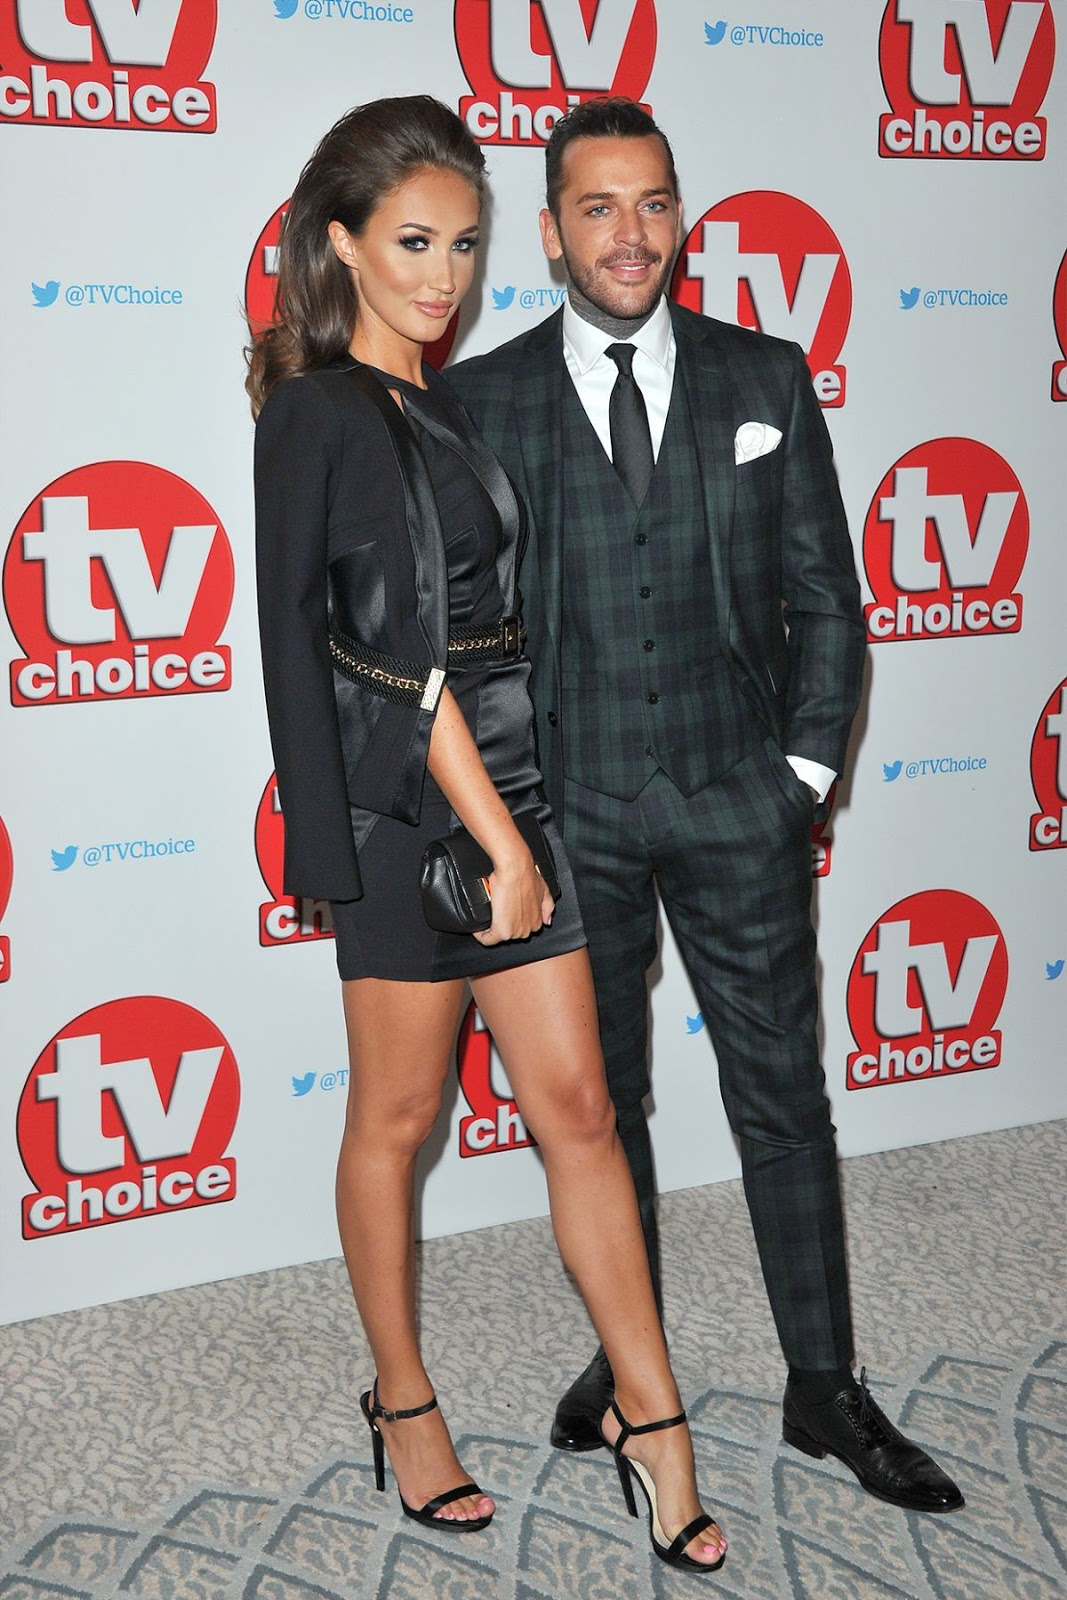 HD Photos of Megan Mckenna at TV Choice Awards in London